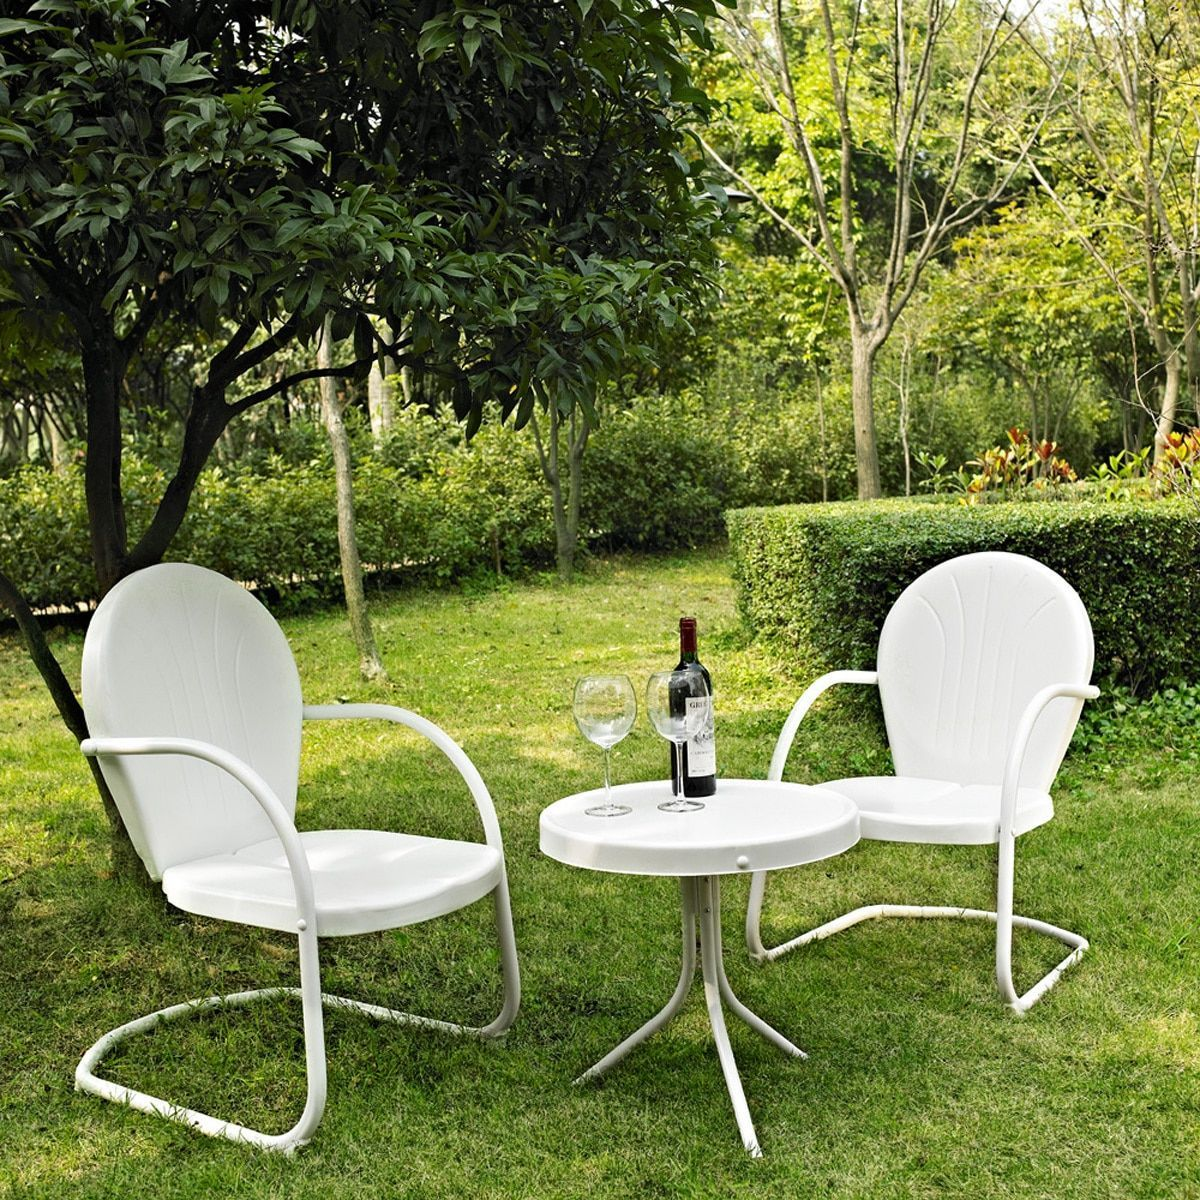 Crosley griffith white metal 3 piece outdoor conversation seating set with side table and 2 chairs white size 3 piece sets patio furniture steel